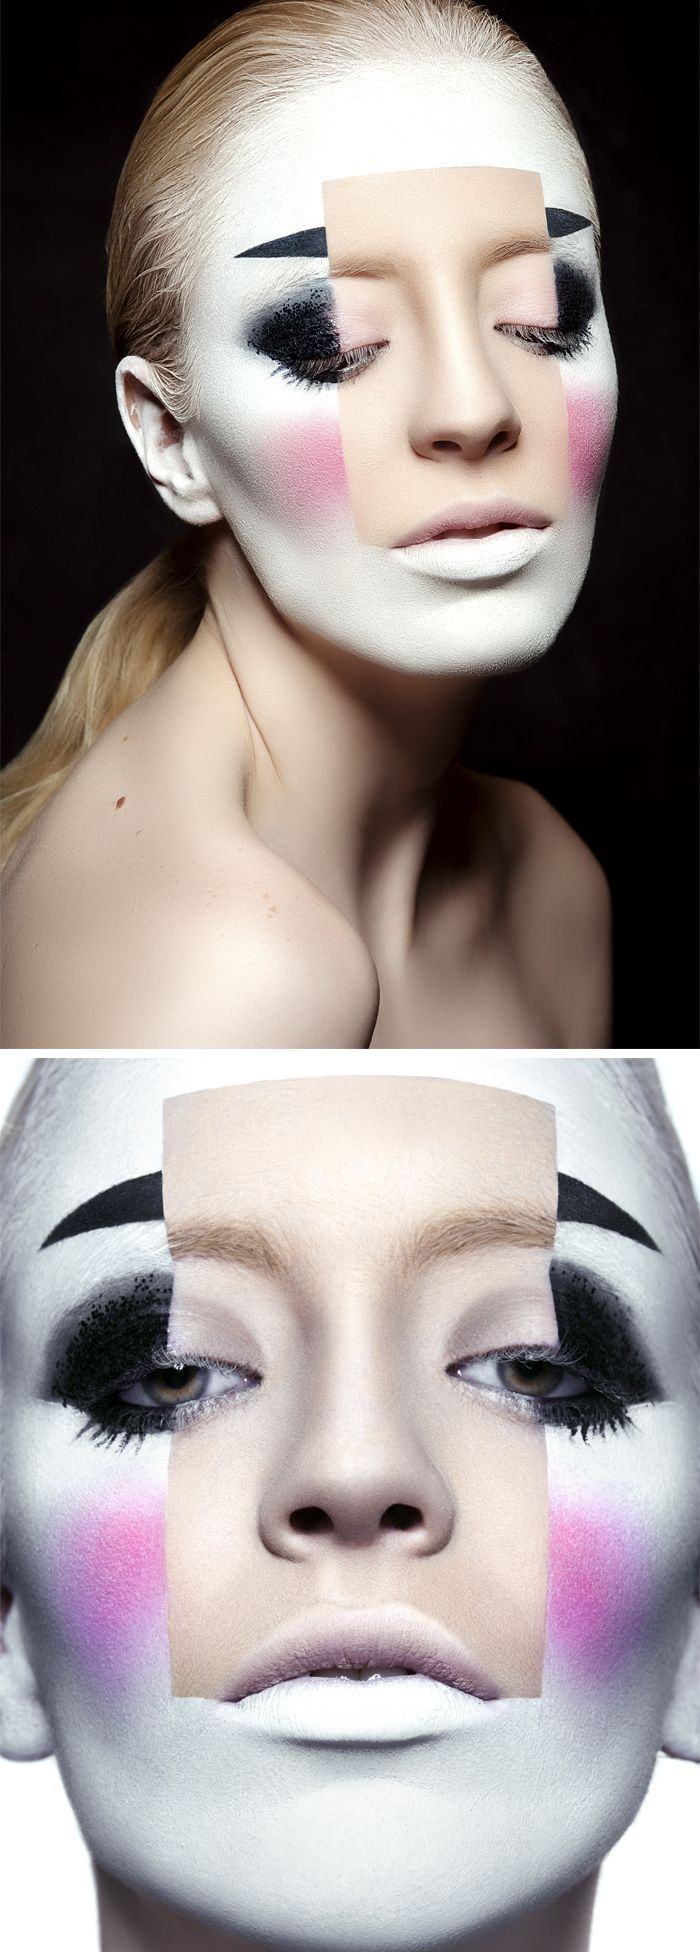 Day of the Dead Makeup: Use face paint to create this look that can be used for Dia de los Muertos or Halloween.